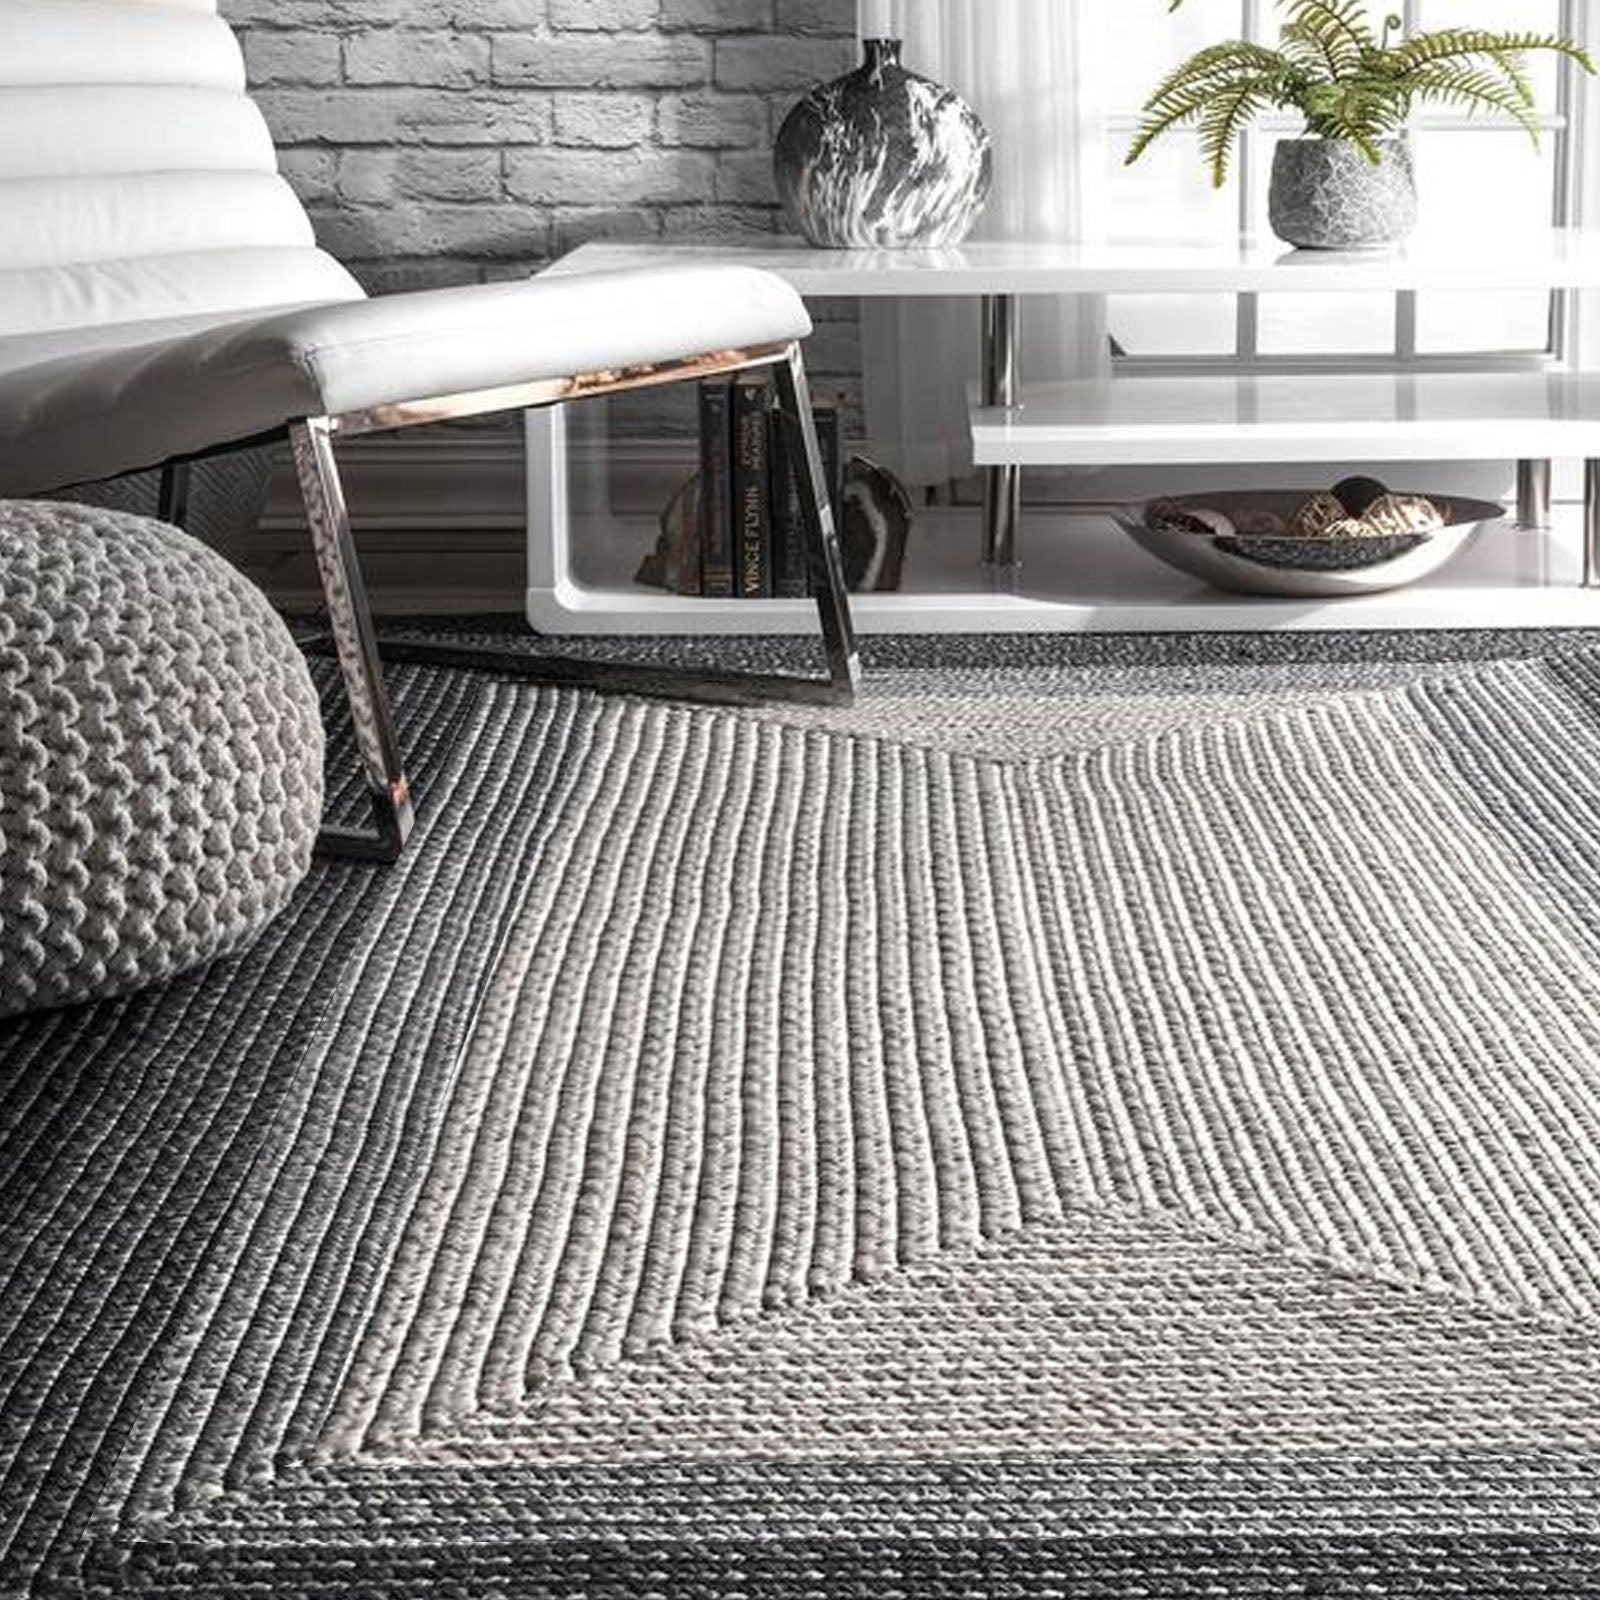 300X200 cm Braided handmade Jute Rug JH-2347-XL -  300X200 سم سجادة من الجوت مضفر يدويًا - Shop Online Furniture and Home Decor Store in Dubai, UAE at ebarza